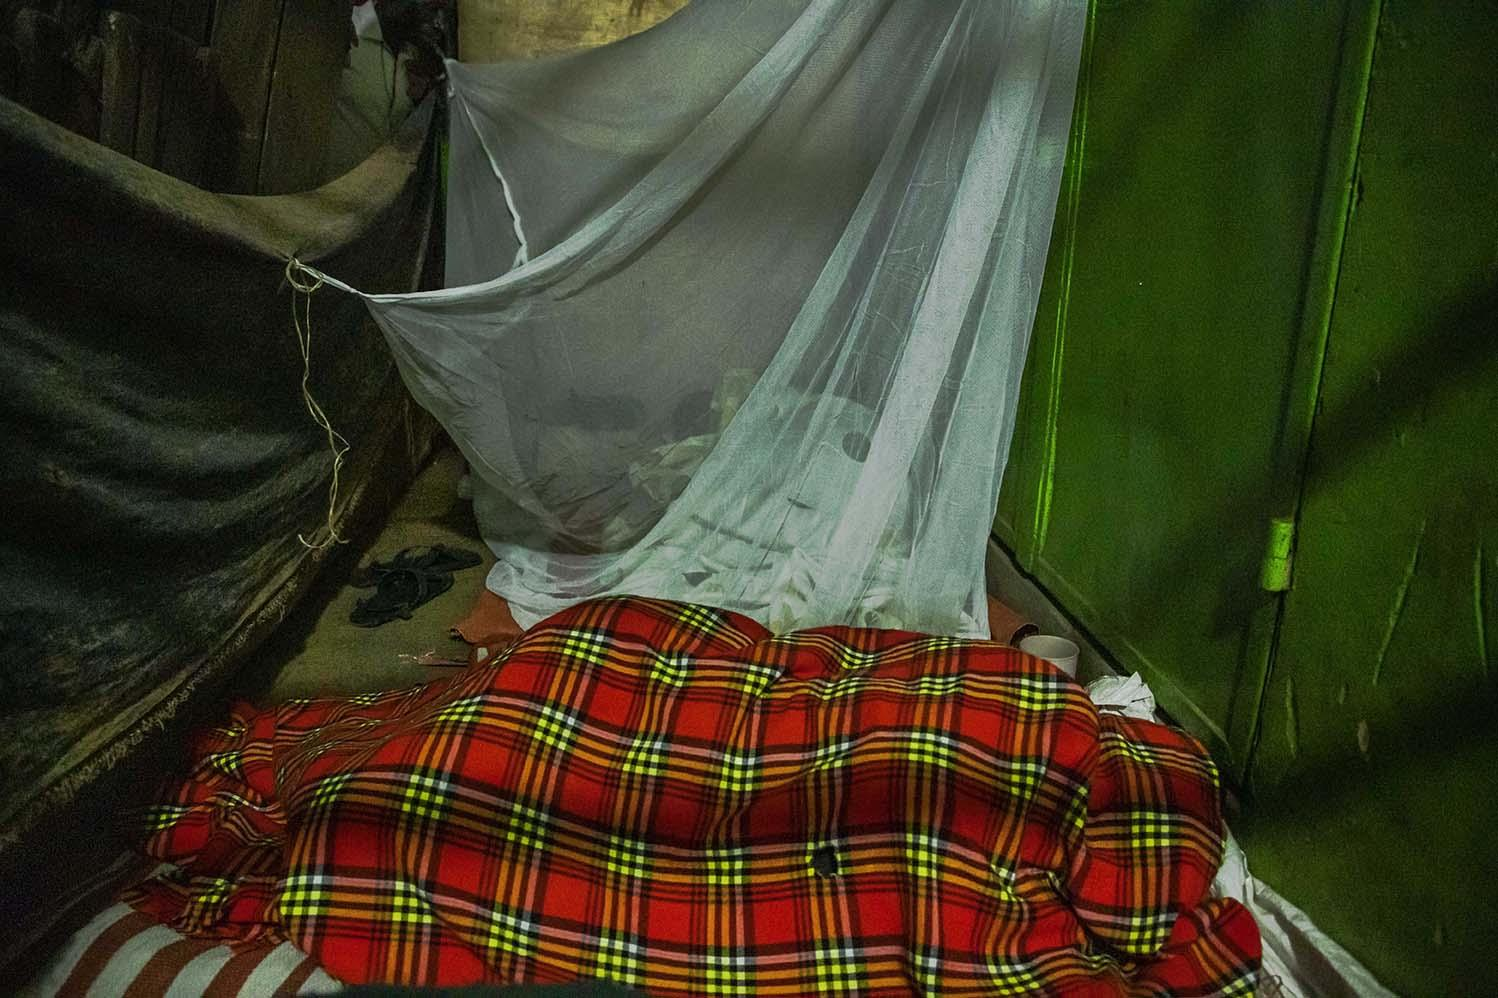 A mother sleeping beside her child in a mosquito net by a veranda at the Nakawa Market in Kampala. Many single mothers in the market have resorted to staying with their young ones because they do not have anyone maturely responsible to look after them while they work.